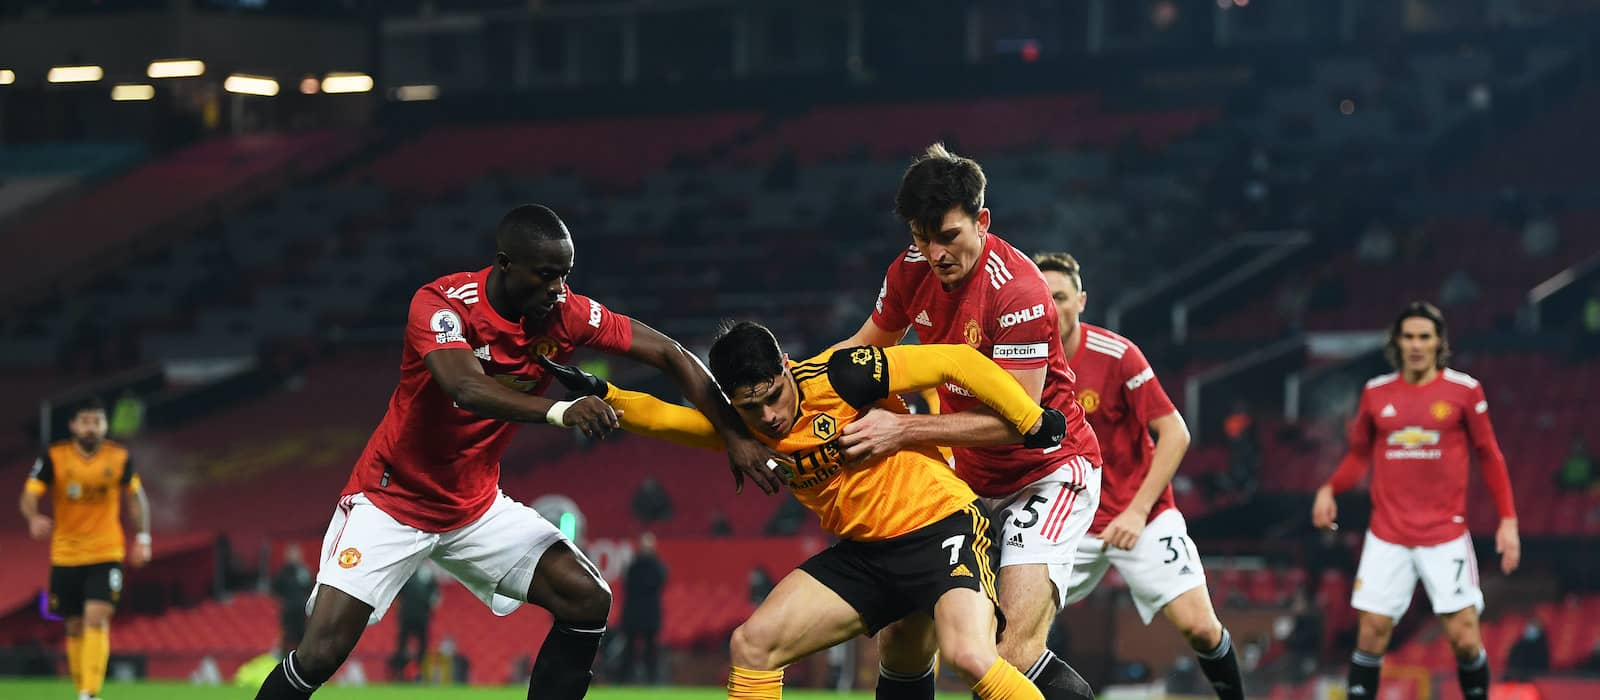 Manchester United fans react to Eric Bailly's performance vs Wolves